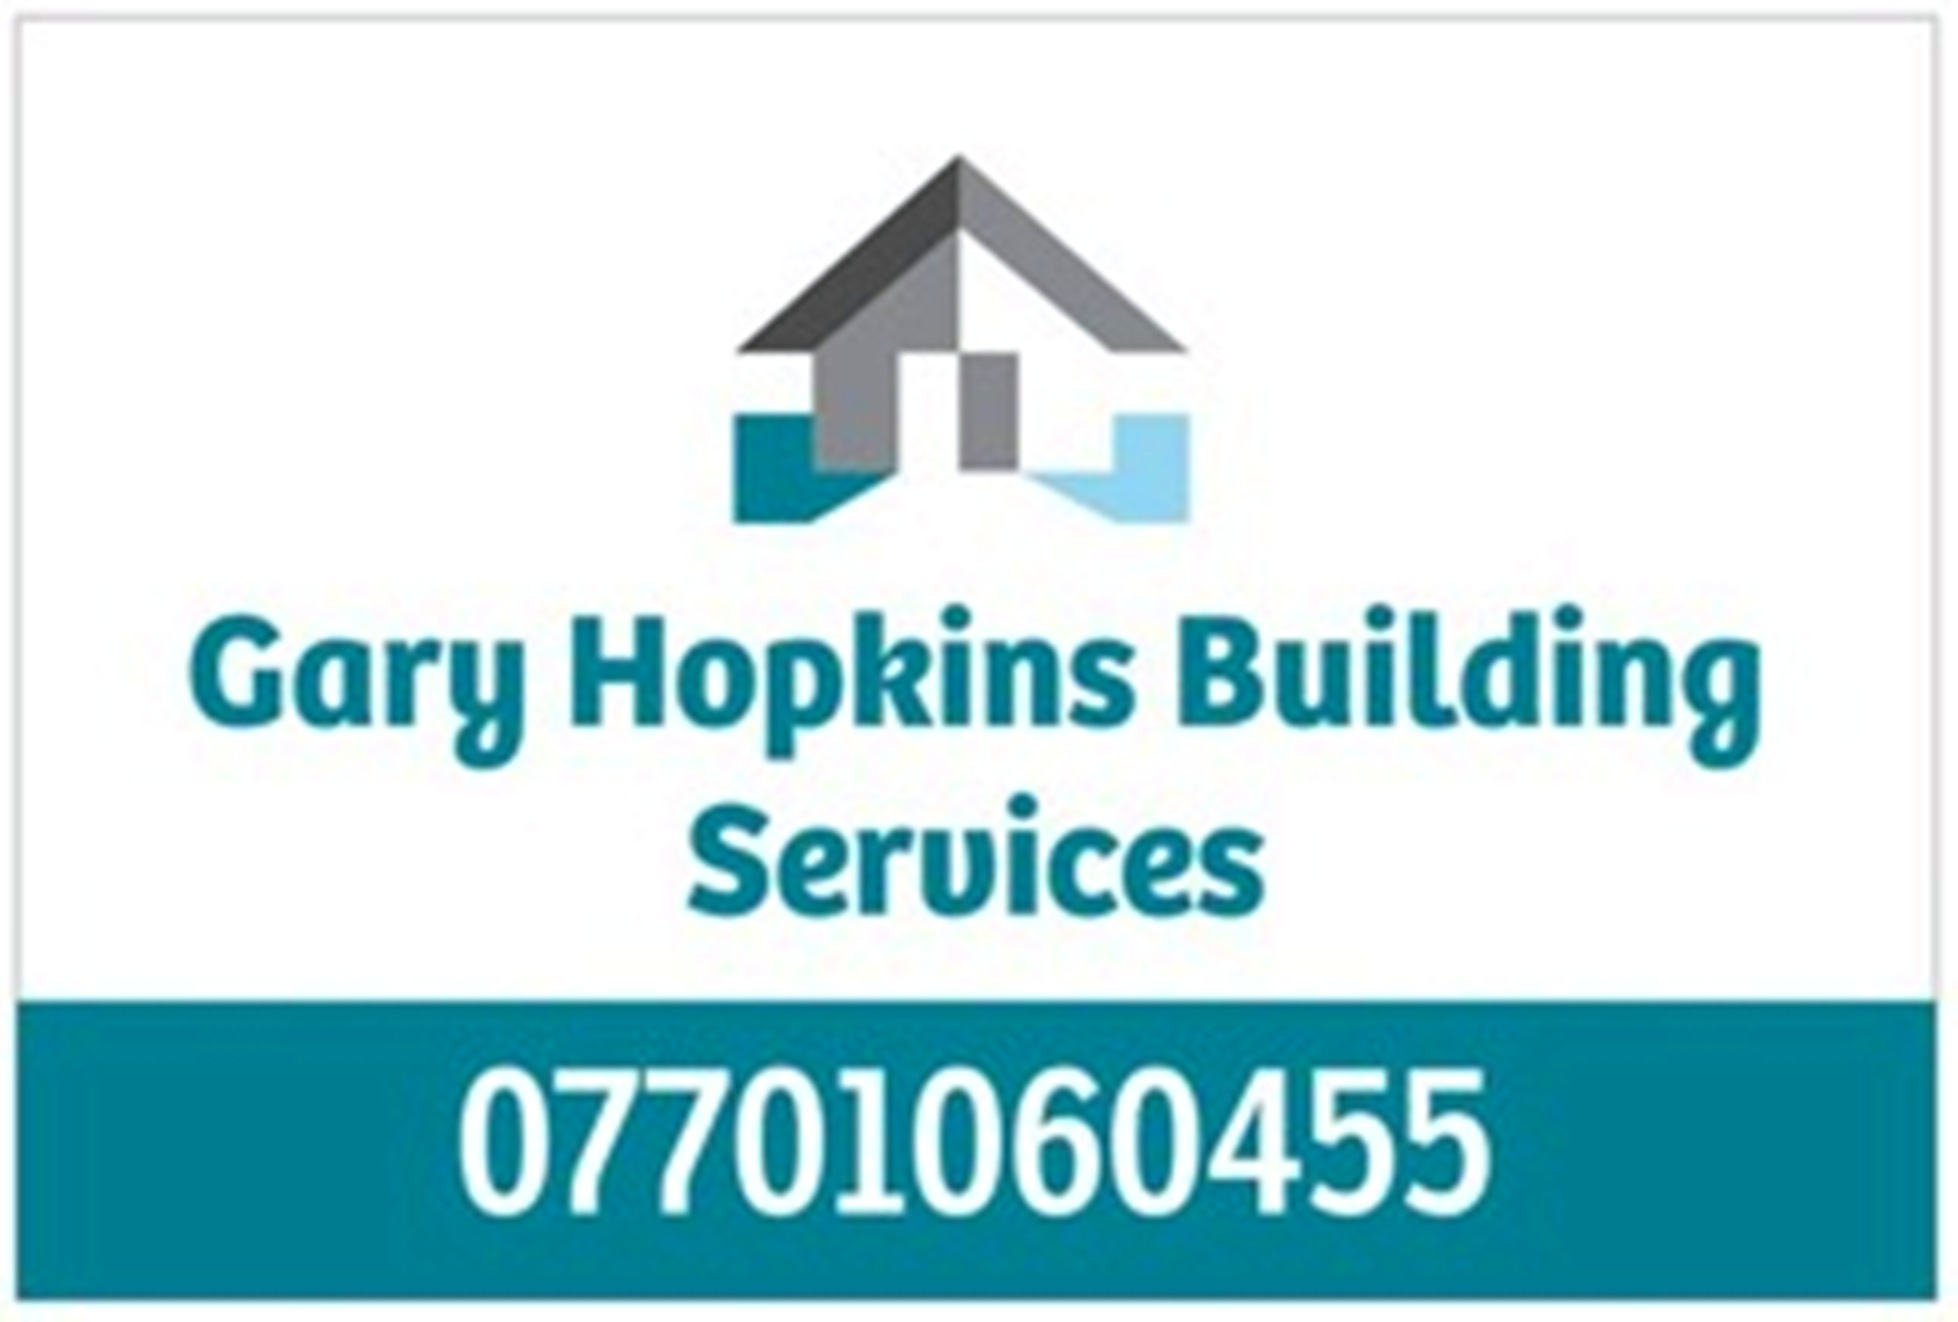 Gary Hopkins Building Services